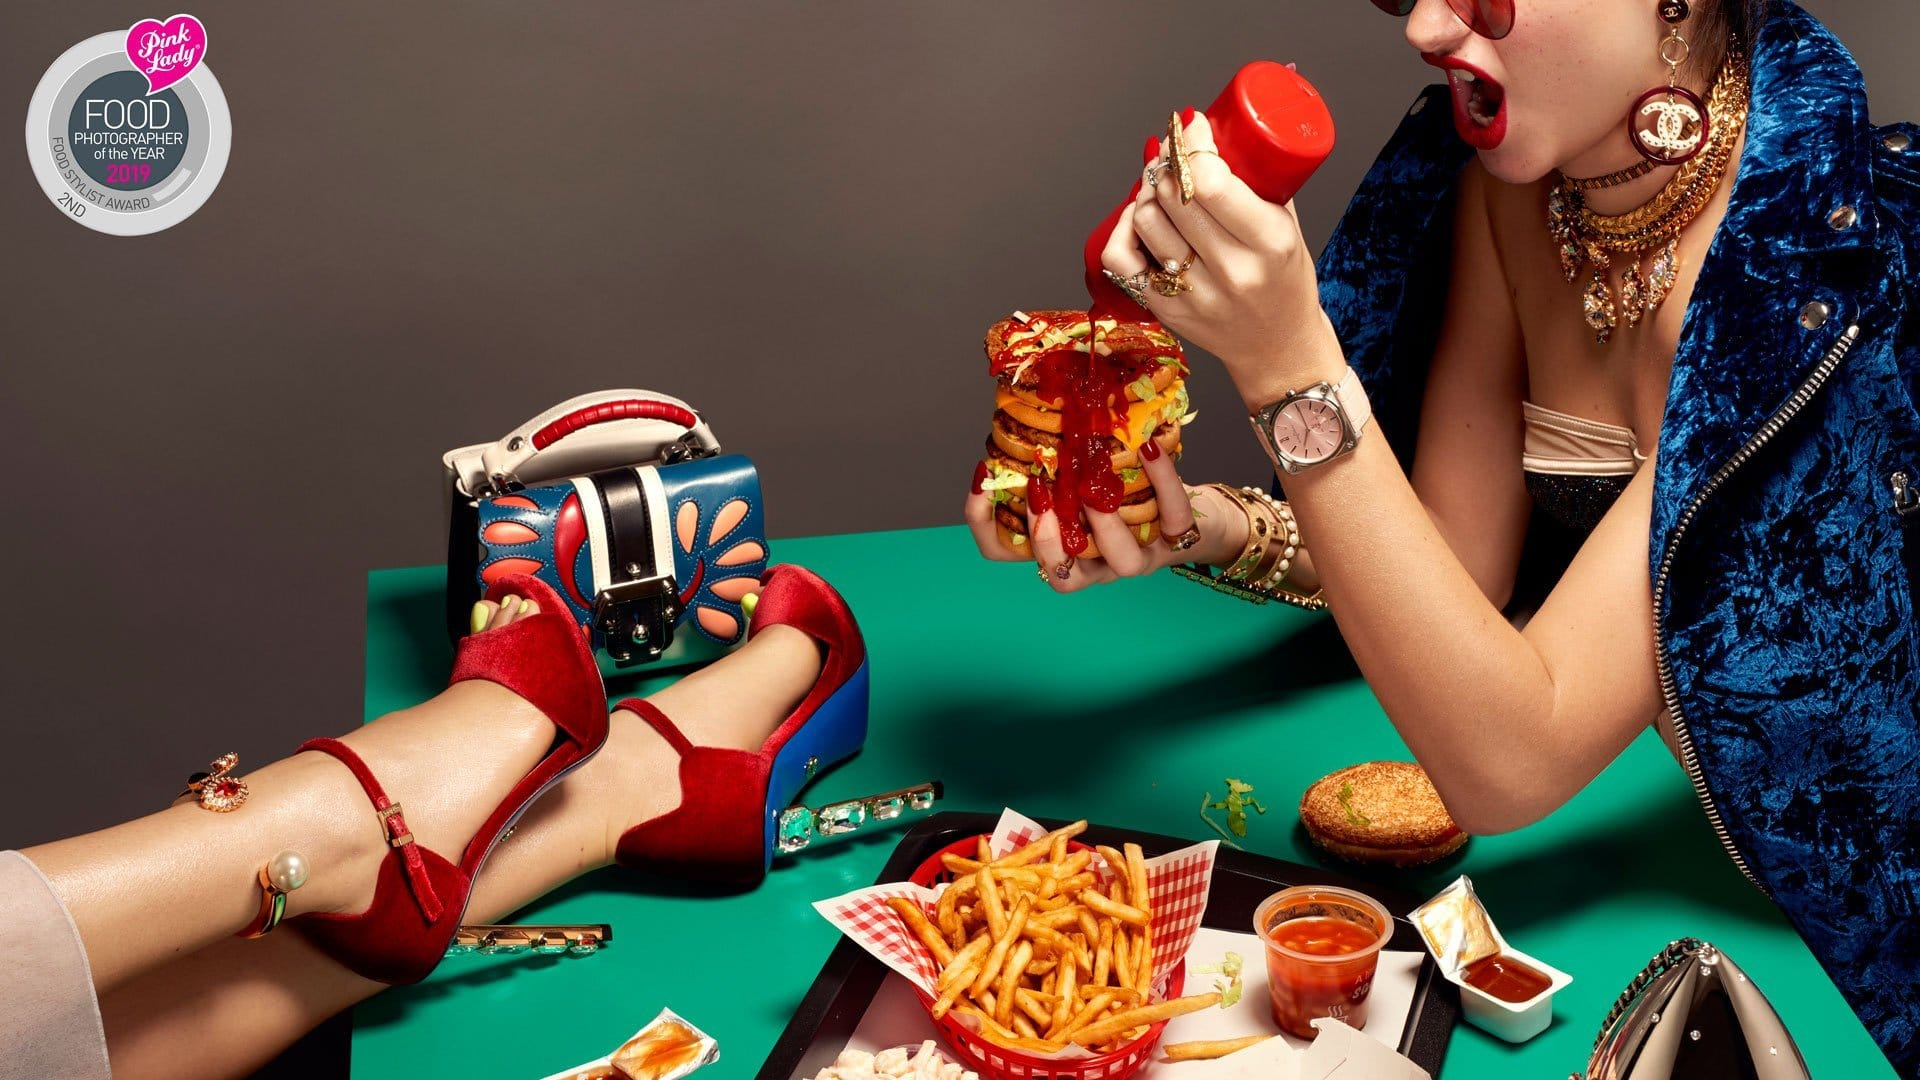 Burger, Chips, Nuggets and Heels - Pink Lady 2nd Position